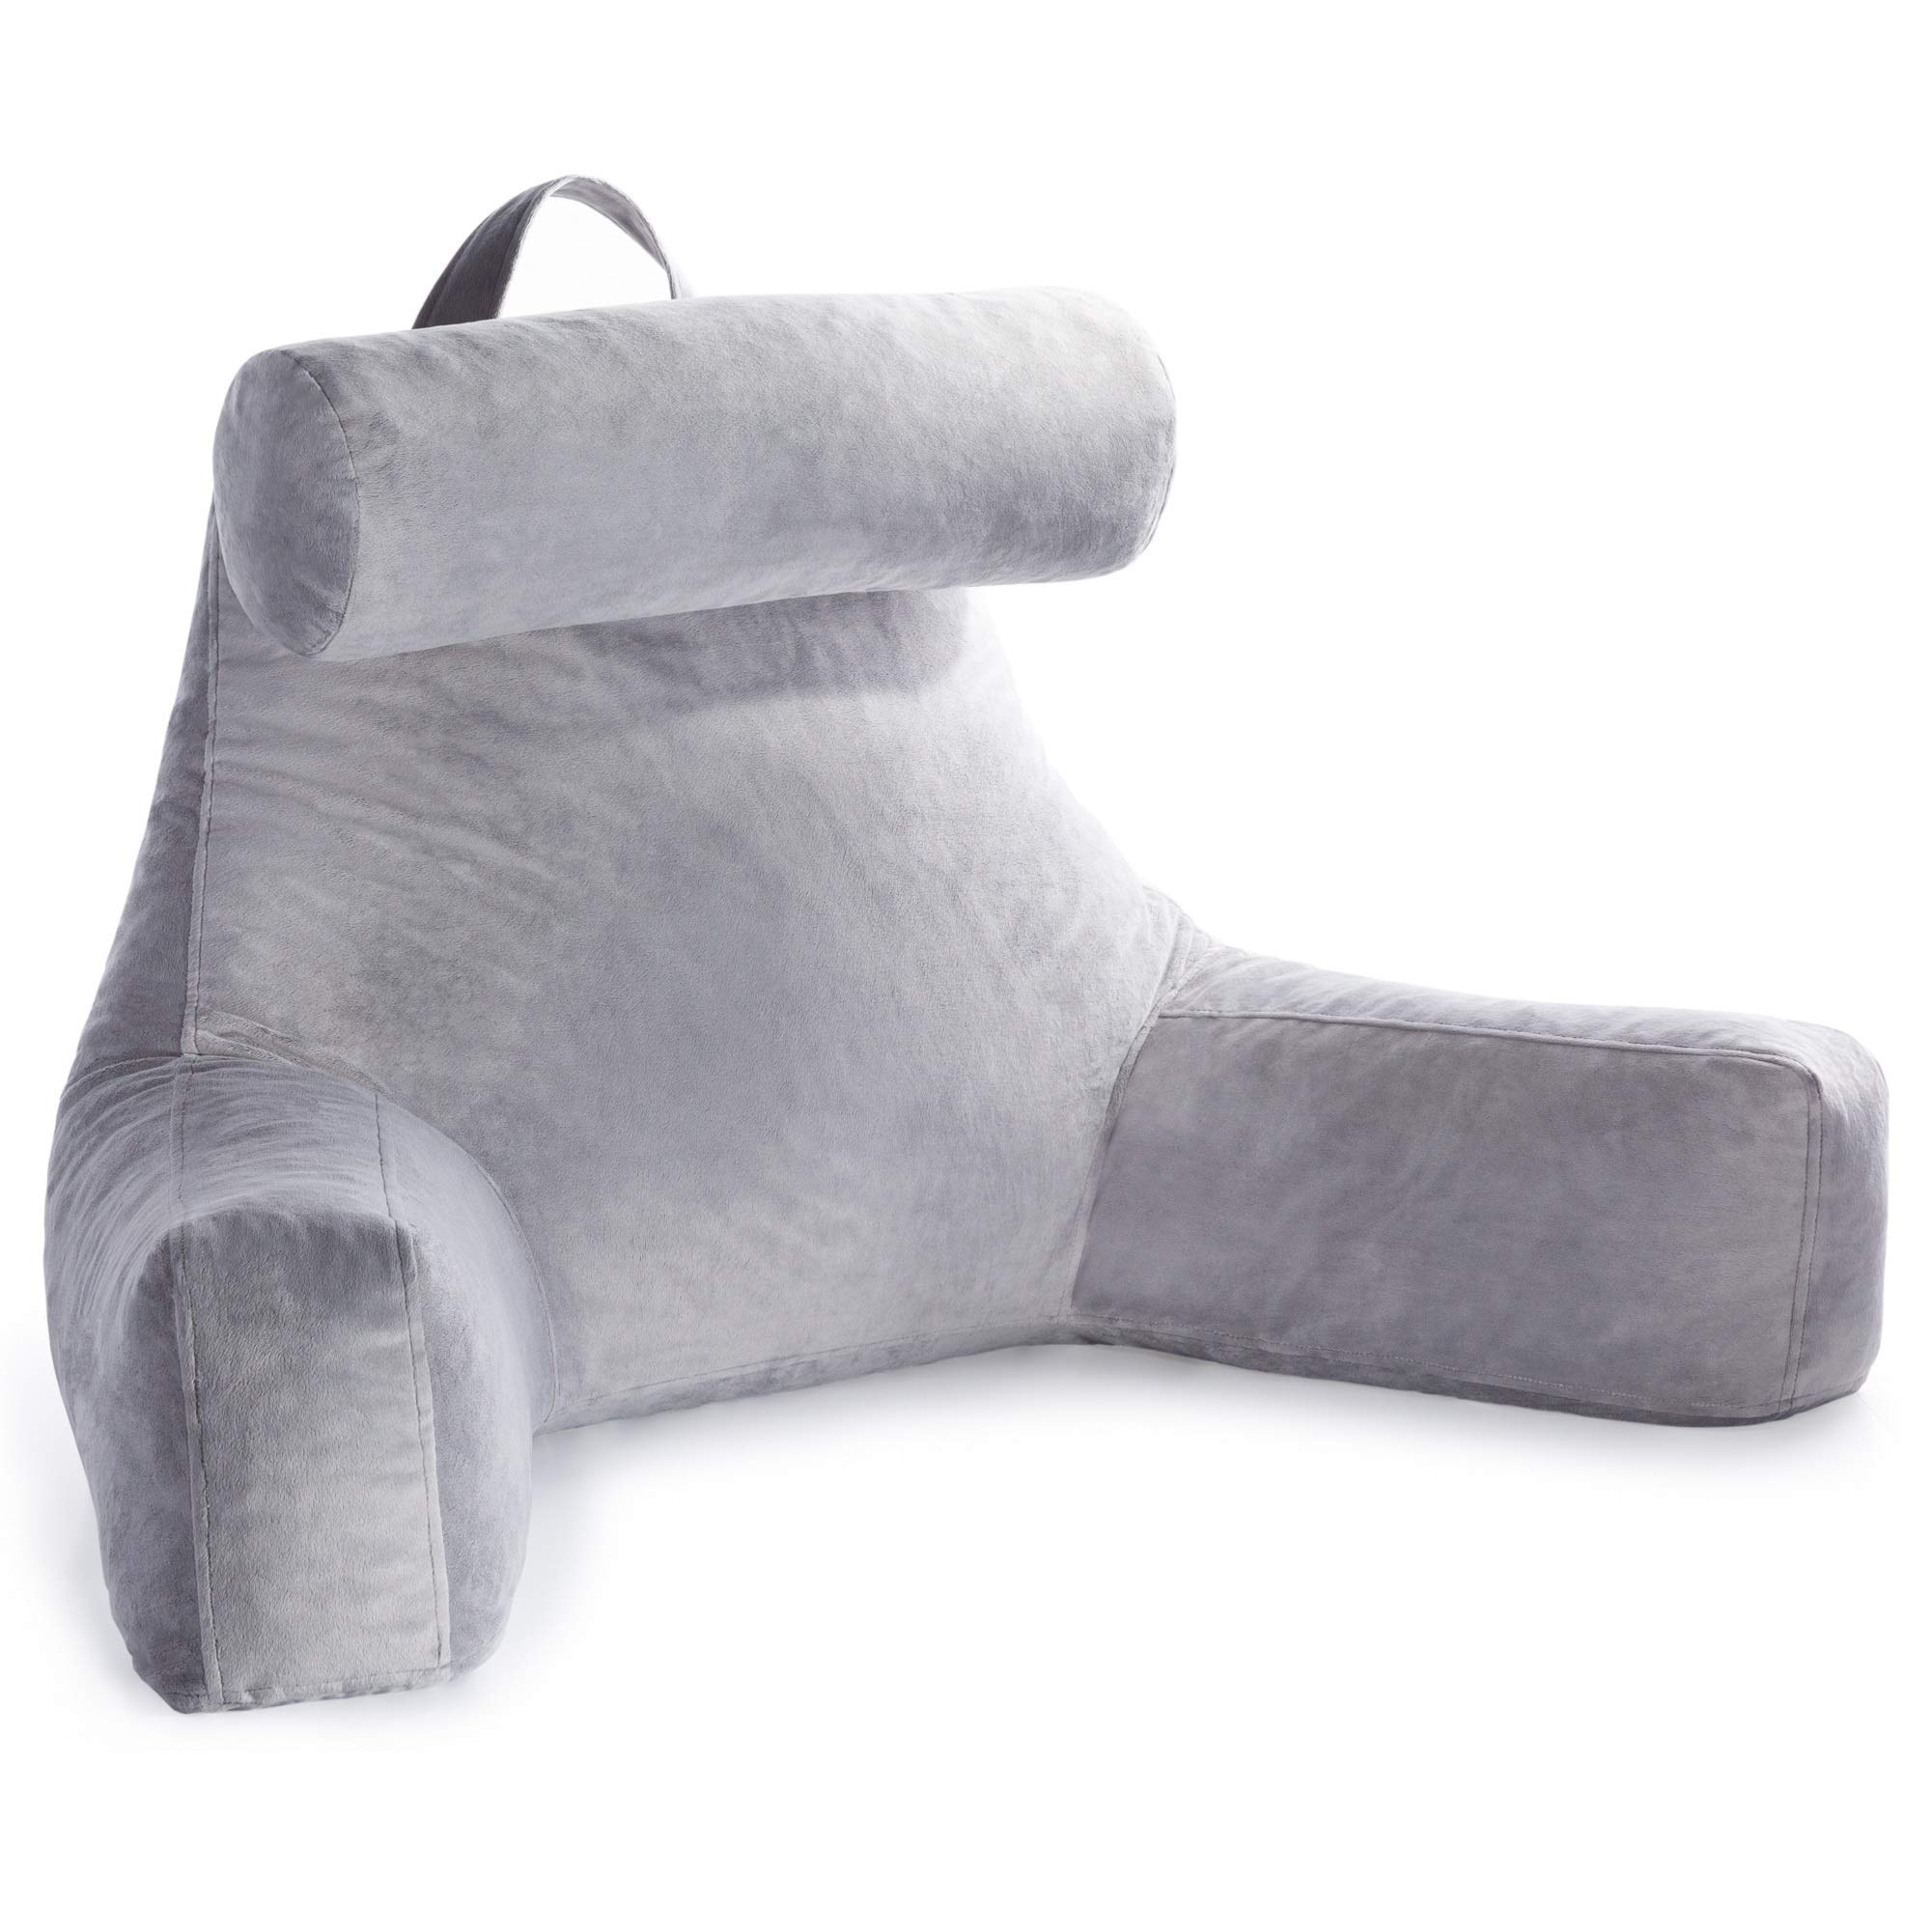 Linenspa Shredded Foam Reading Pillow with Neck Support - Extra Large Design for Adults - Perfect for Back Support While Relaxing, Gaming, Reading, or Watching TV - Soft Velour Cover (Renewed) by Linenspa